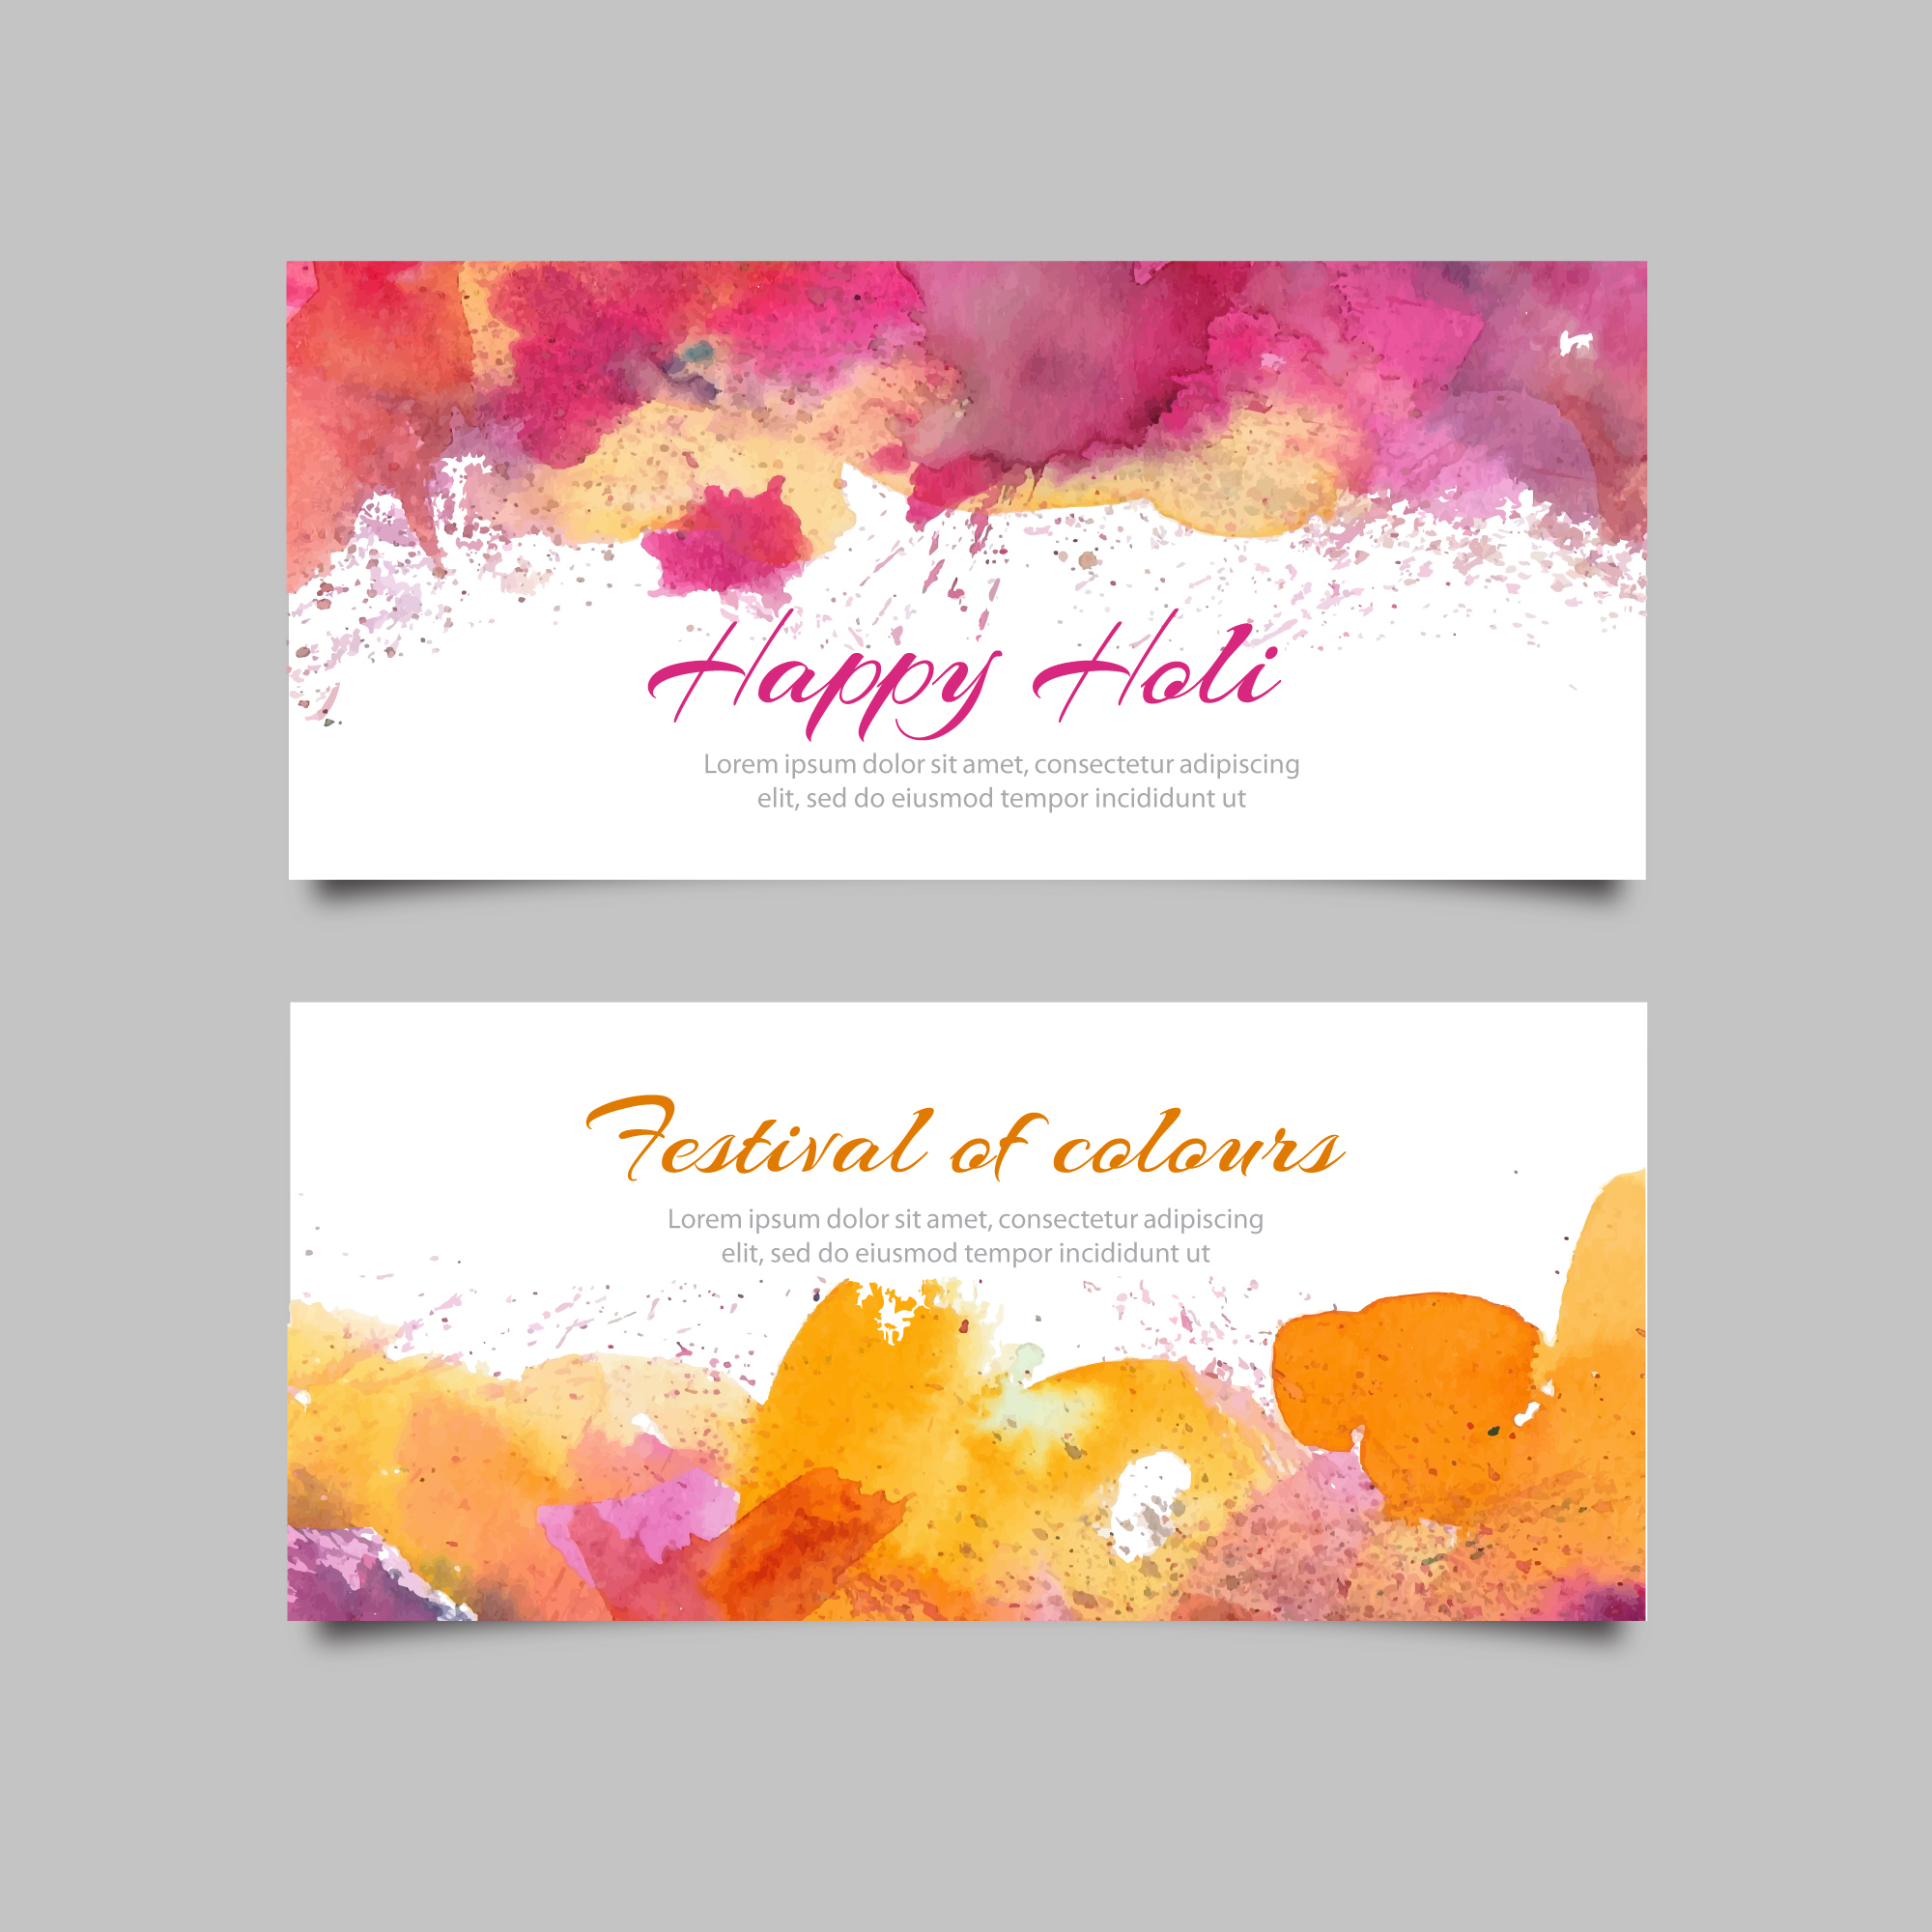 Holi banners with watercolors